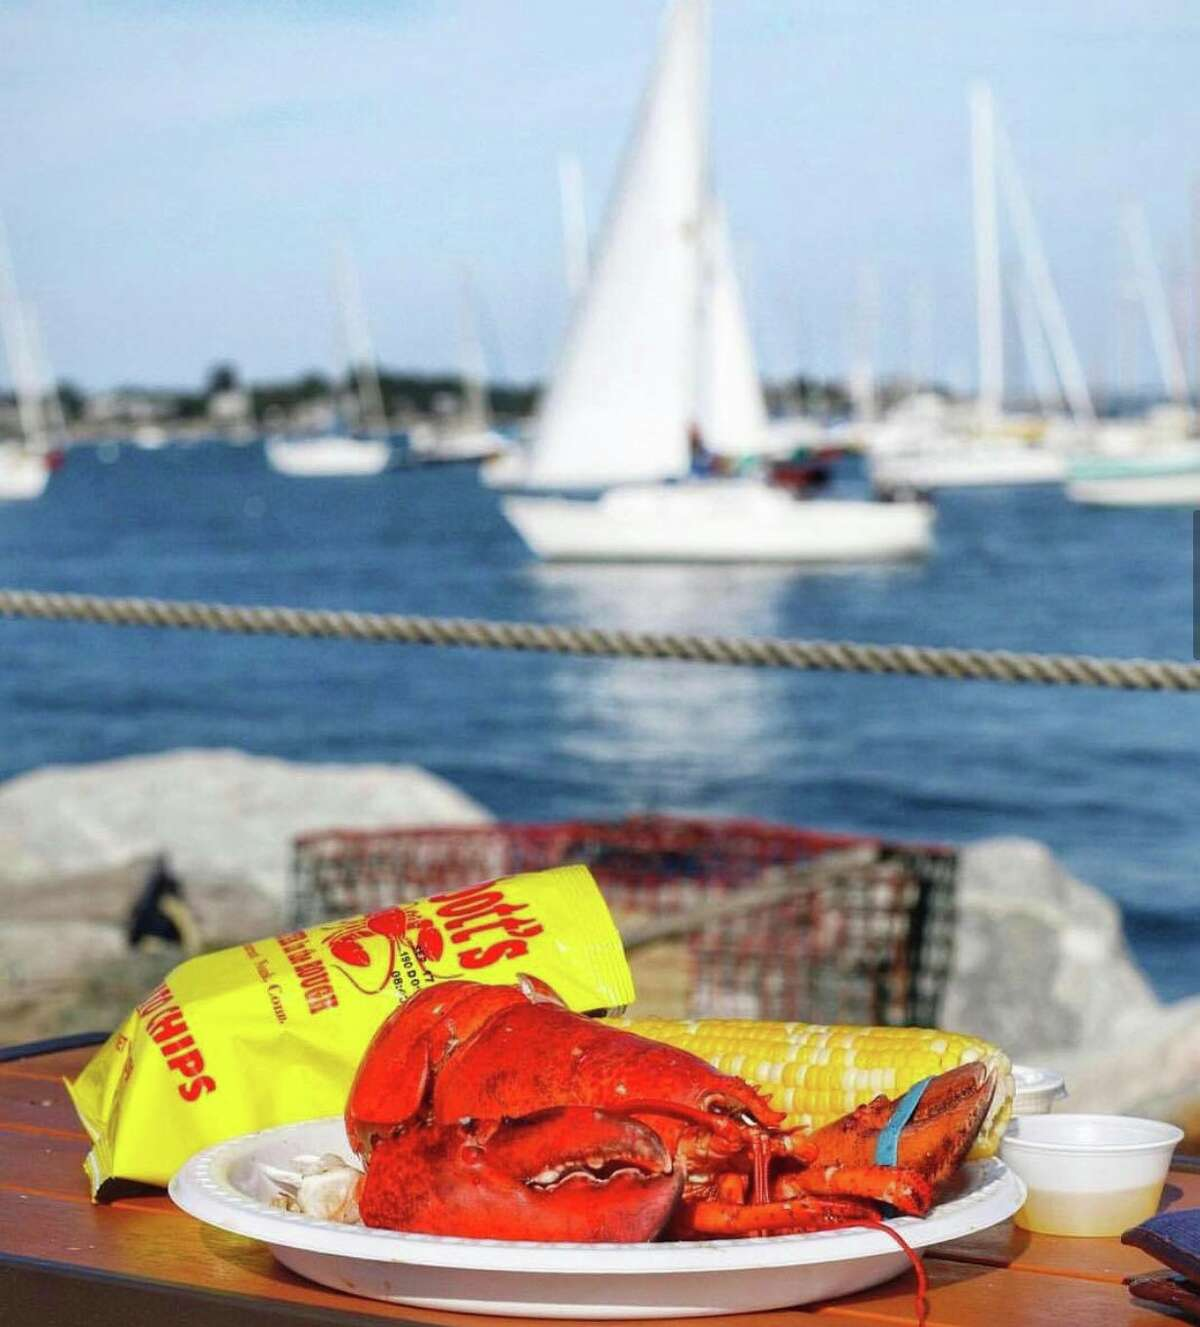 Abbott's Lobster in the Rough (Seafood) - 117 Pearl St, Noank  Captain Scott's Lobster Dock (Seafood) - 80 Hamilton St, New London Deli International (Hispanic) - 57 Blackhill St, New London Engine Room (New American) - 14 Holmes St, Mystic Grass & Bone (Butcher Shop) - 24 E Main St, Mystic Hamilton Street Market (Sandwiches) - 639 Broad St, New London New London Coffee Shop (Coffee) - 453 Montauk Ave, New London On the Waterfront (Seafood) - 250 Pequot Ave, New London Oyster Club (Seafood) - 13 Water St, Mystic